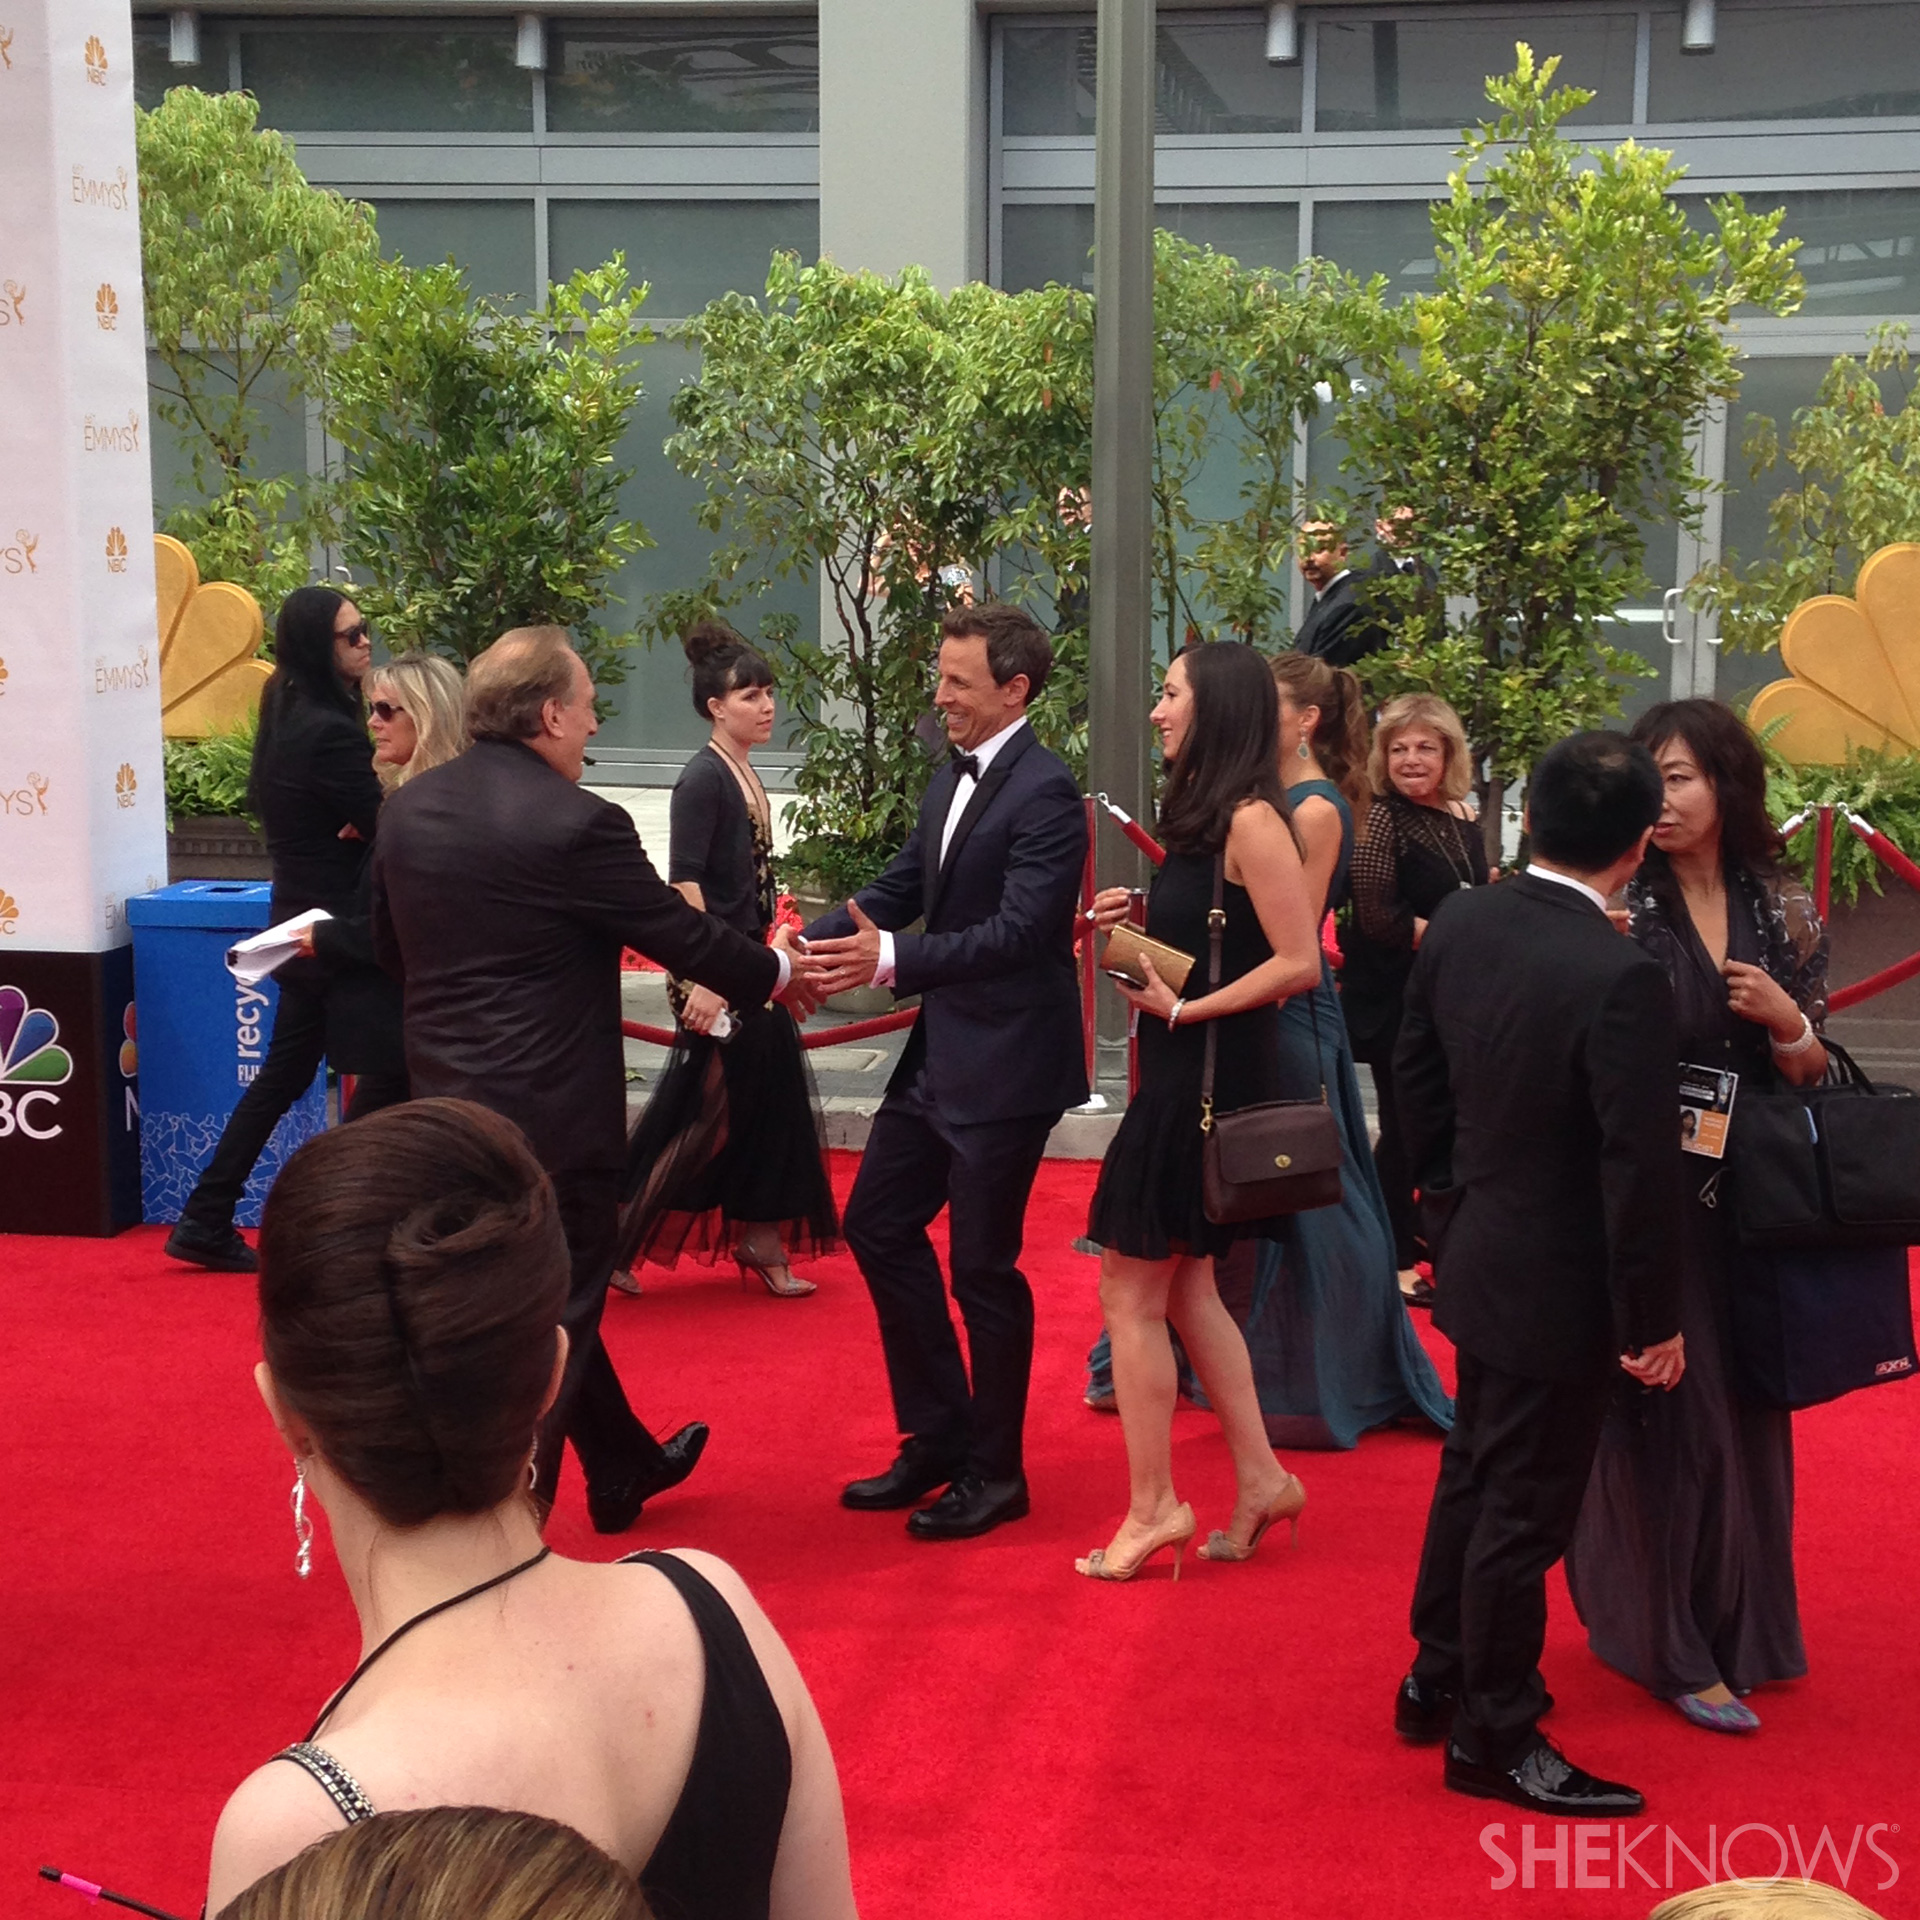 Photos from the Emmys red carpet